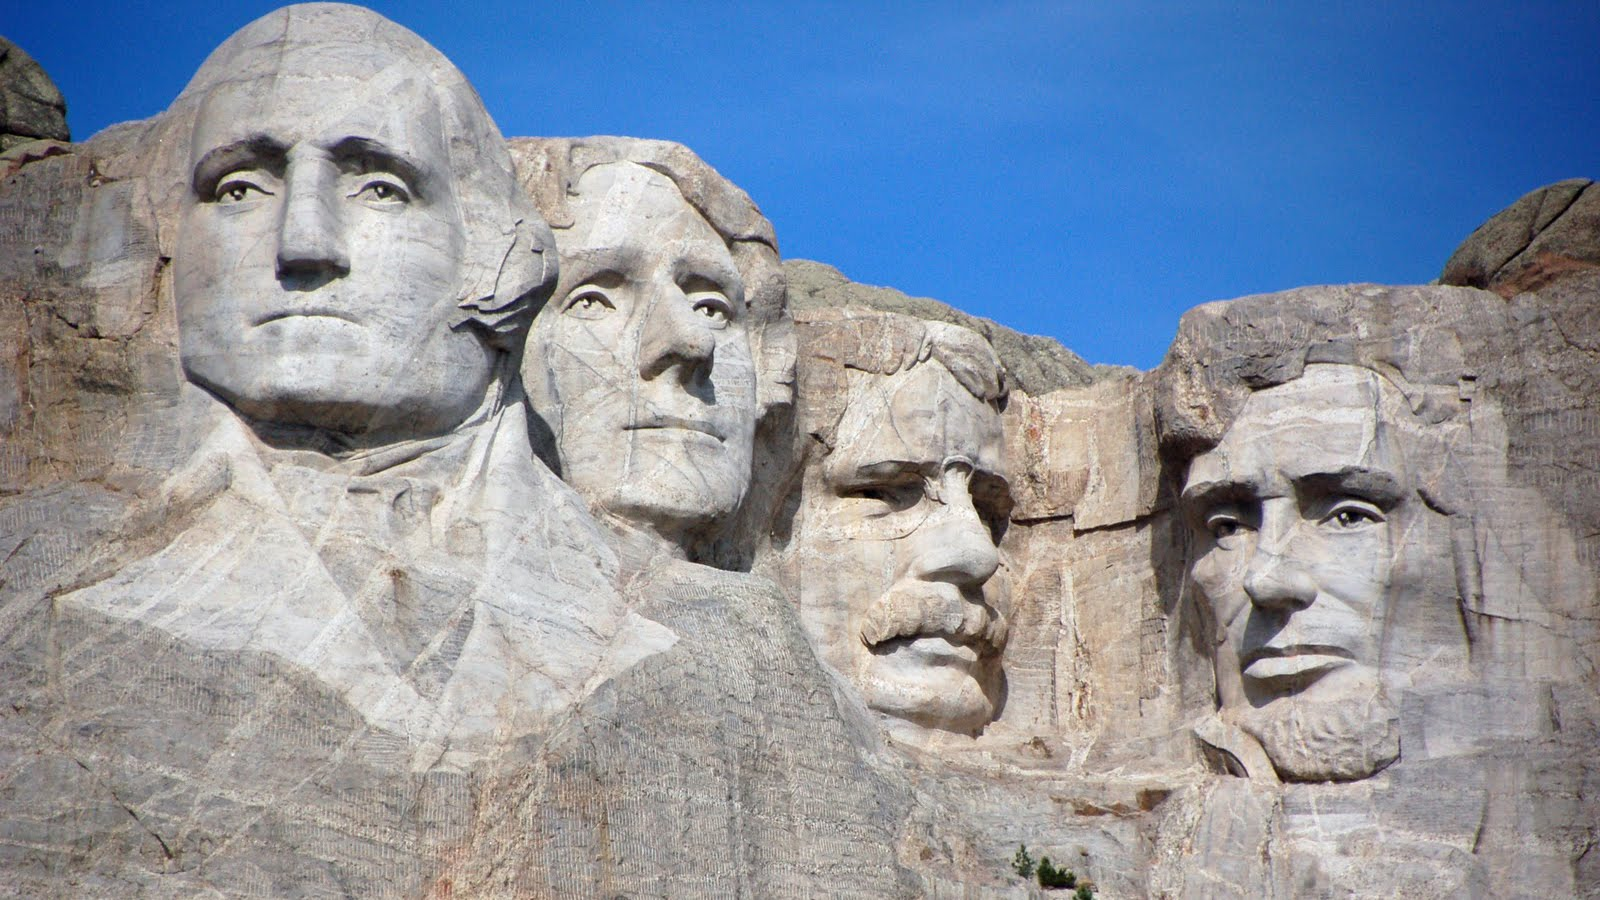 Mount rushmore clipart easy. Mt drawing at getdrawings